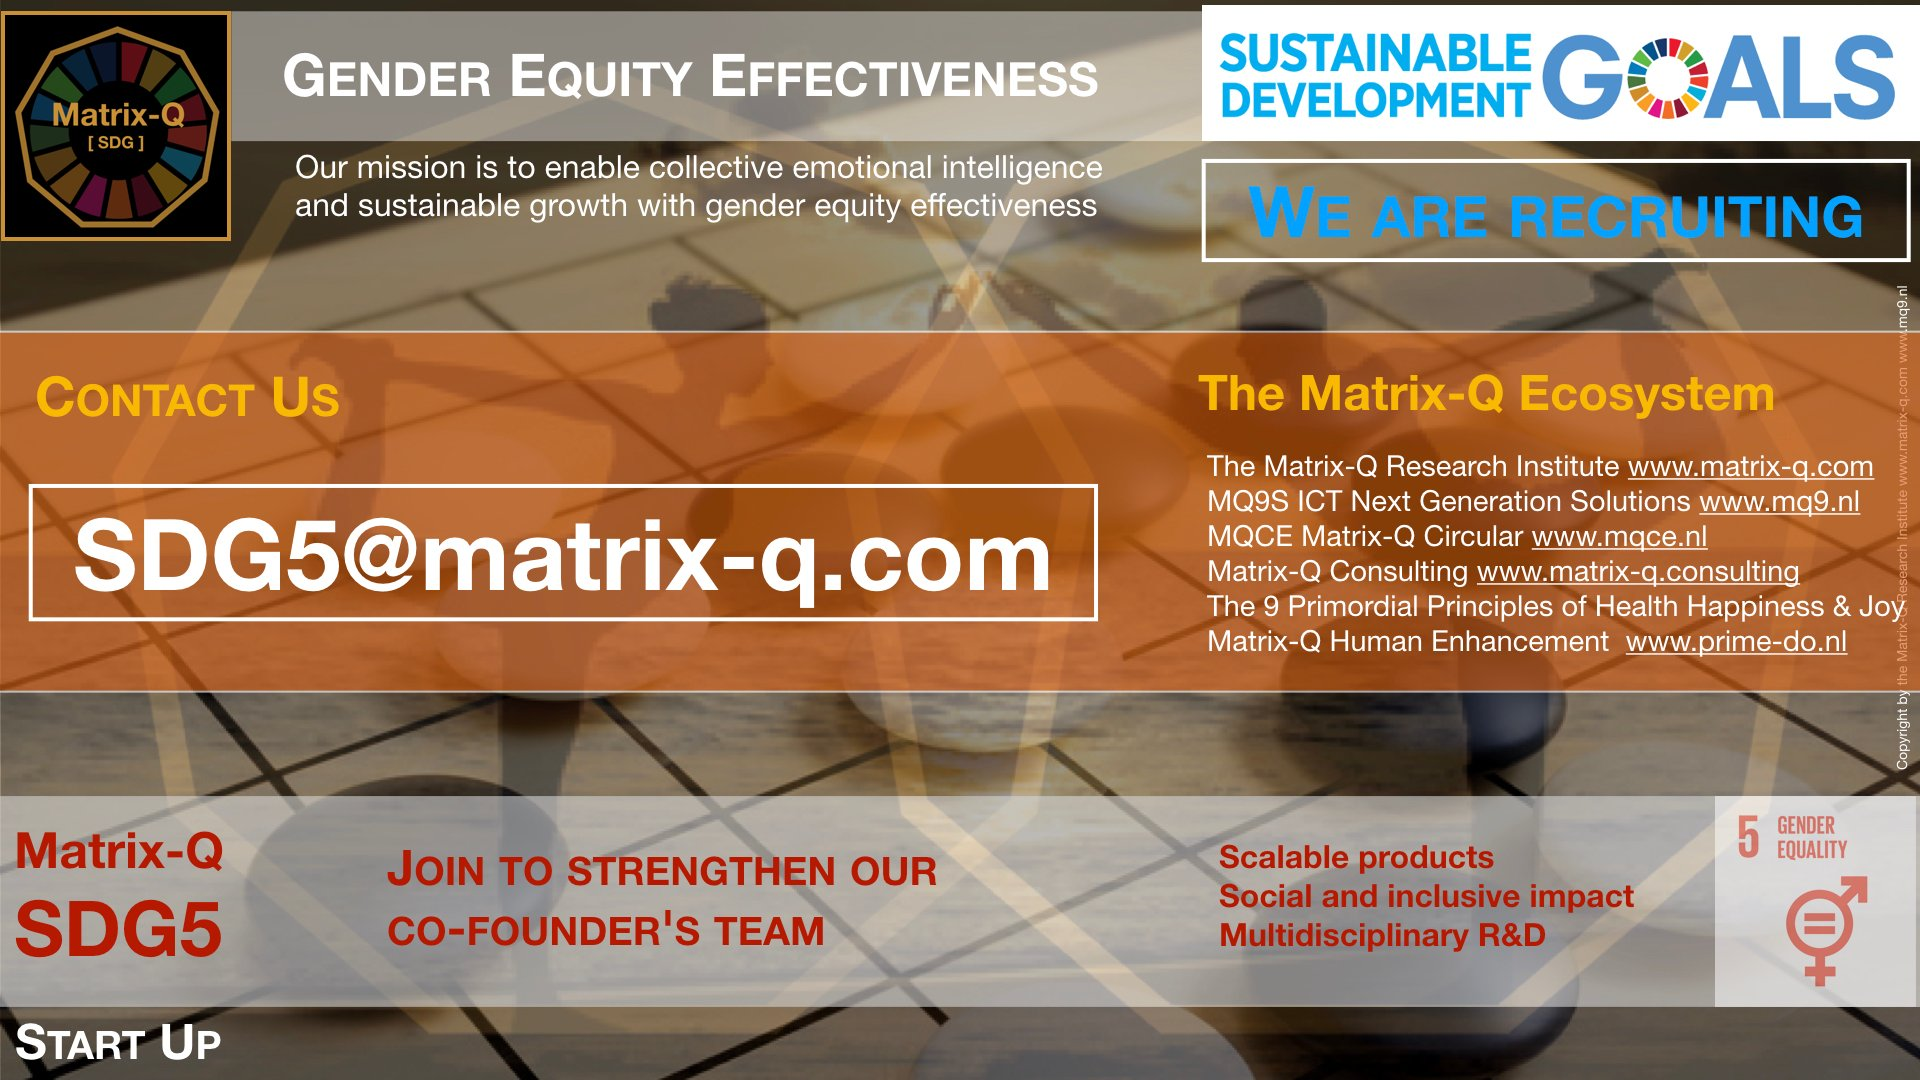 Matrix-Q SDG5 Start-Up Gender Equity Effectiveness.003